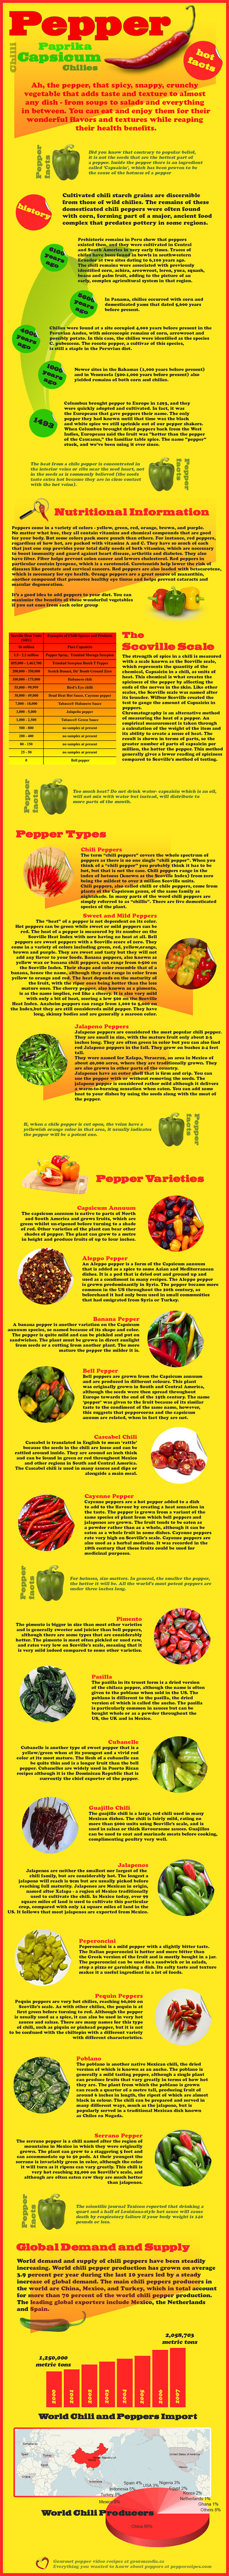 Ultiamte Pepper Guide And Health Benefits